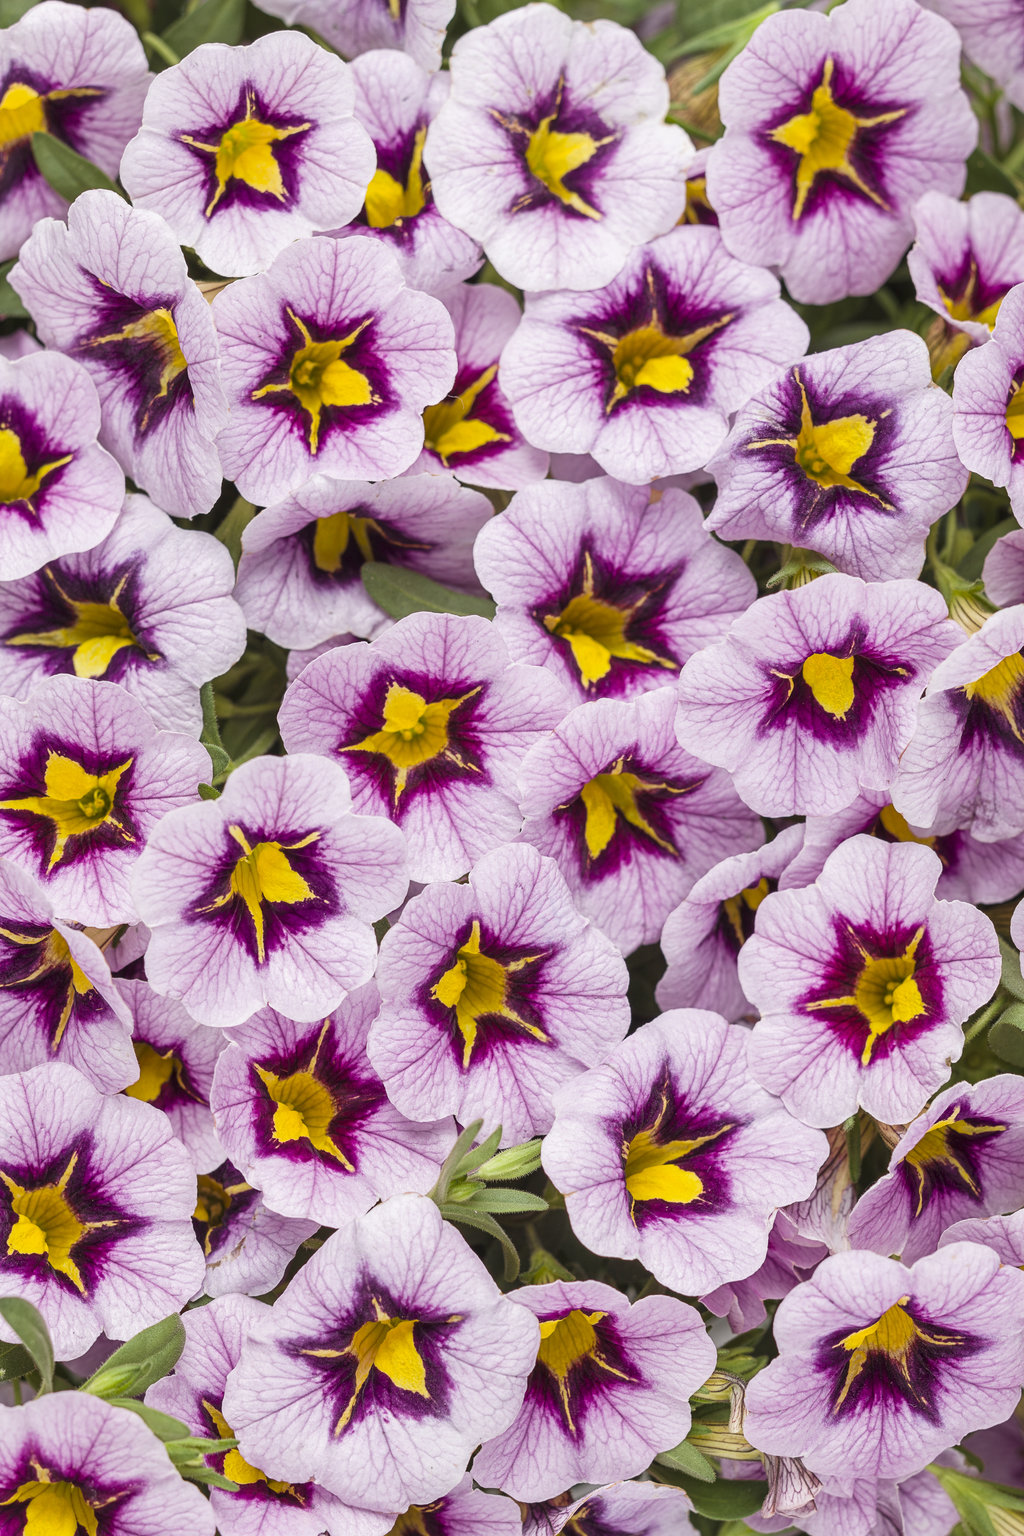 Superbells morning star calibrachoa hybrid proven - Calibrachoa superbells ...